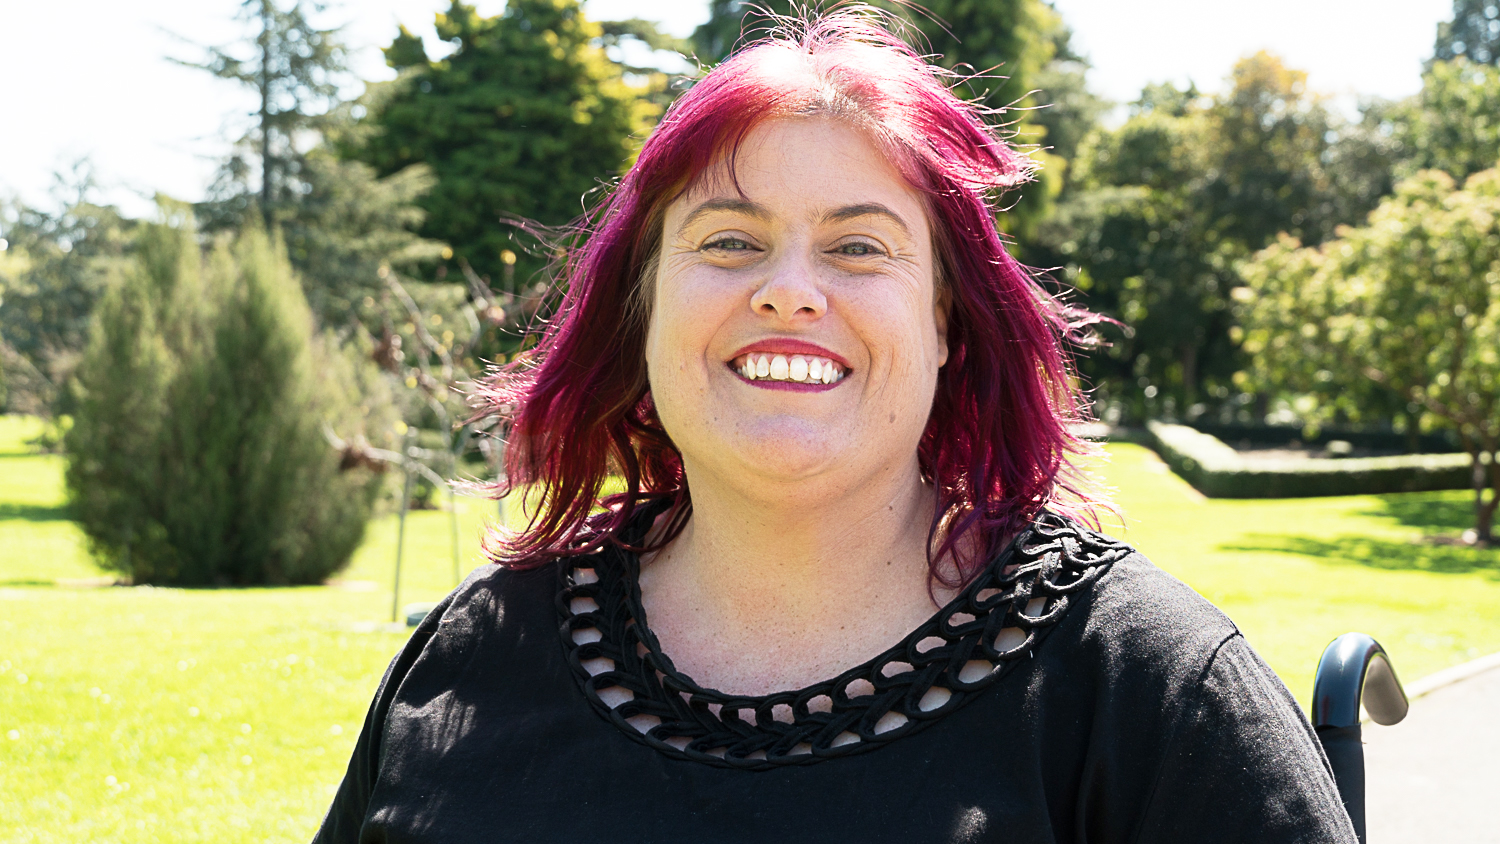 Photo of Christine Priest outside with a huge smile and purple hair